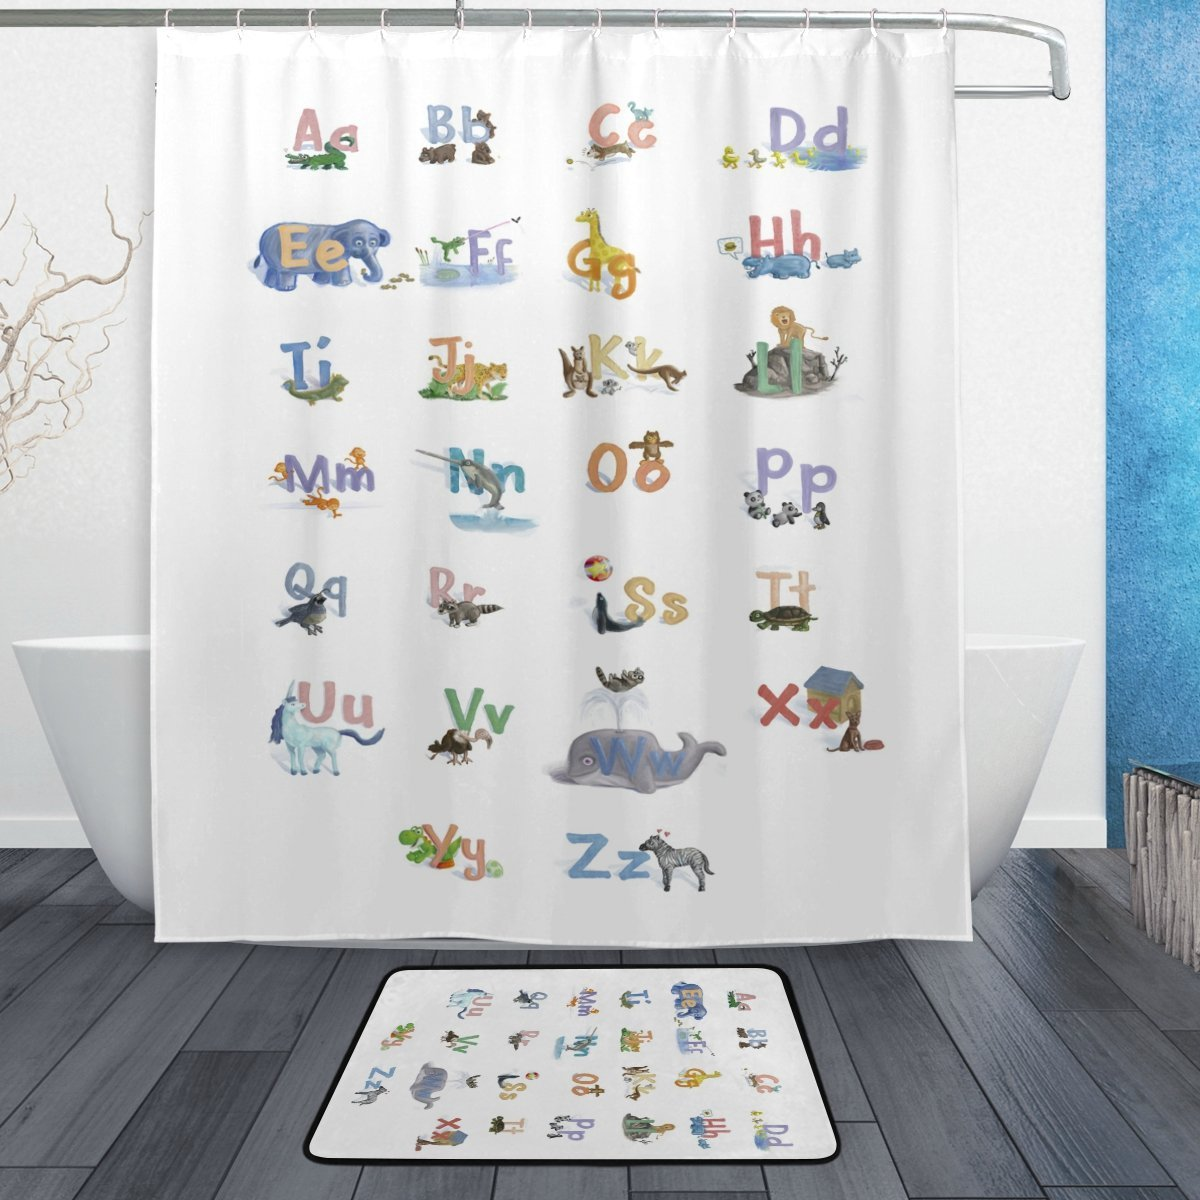 Learning Tools For Kids Shower Curtain And Mat Set ABC Alphabet Educational Waterproof Fabric Bathroom In Curtains From Home Garden On